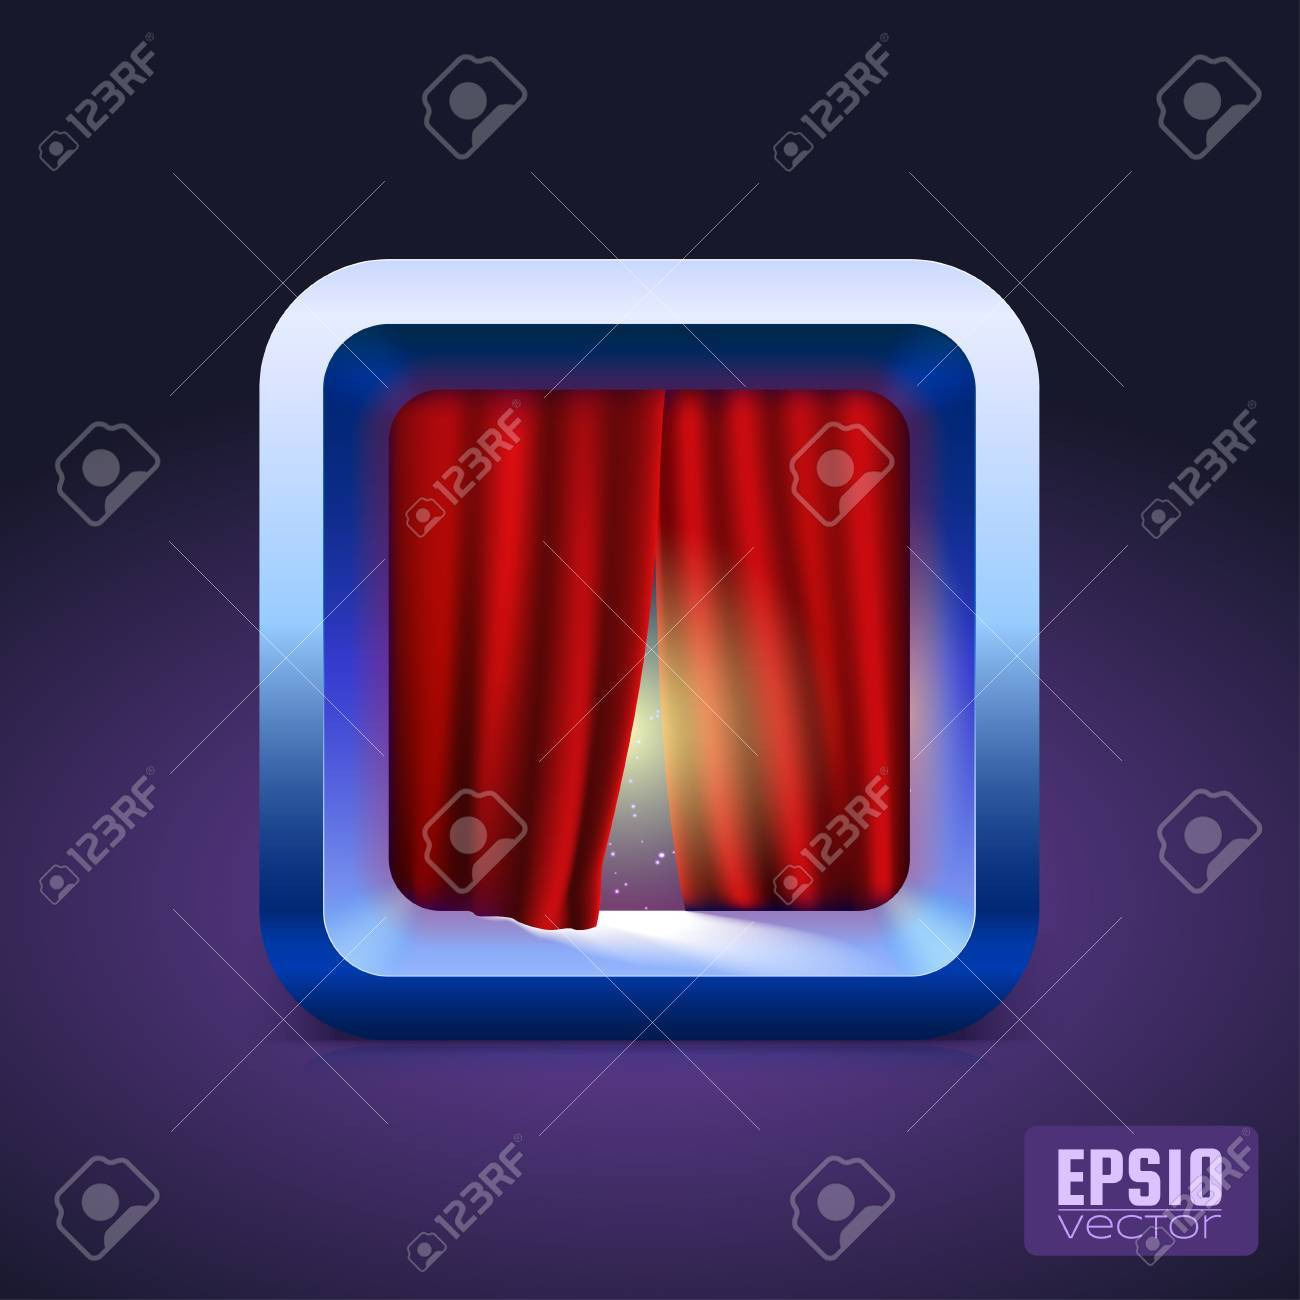 Theater curtain icon IOS style  Vector illustration for your design Stock Vector - 16675054